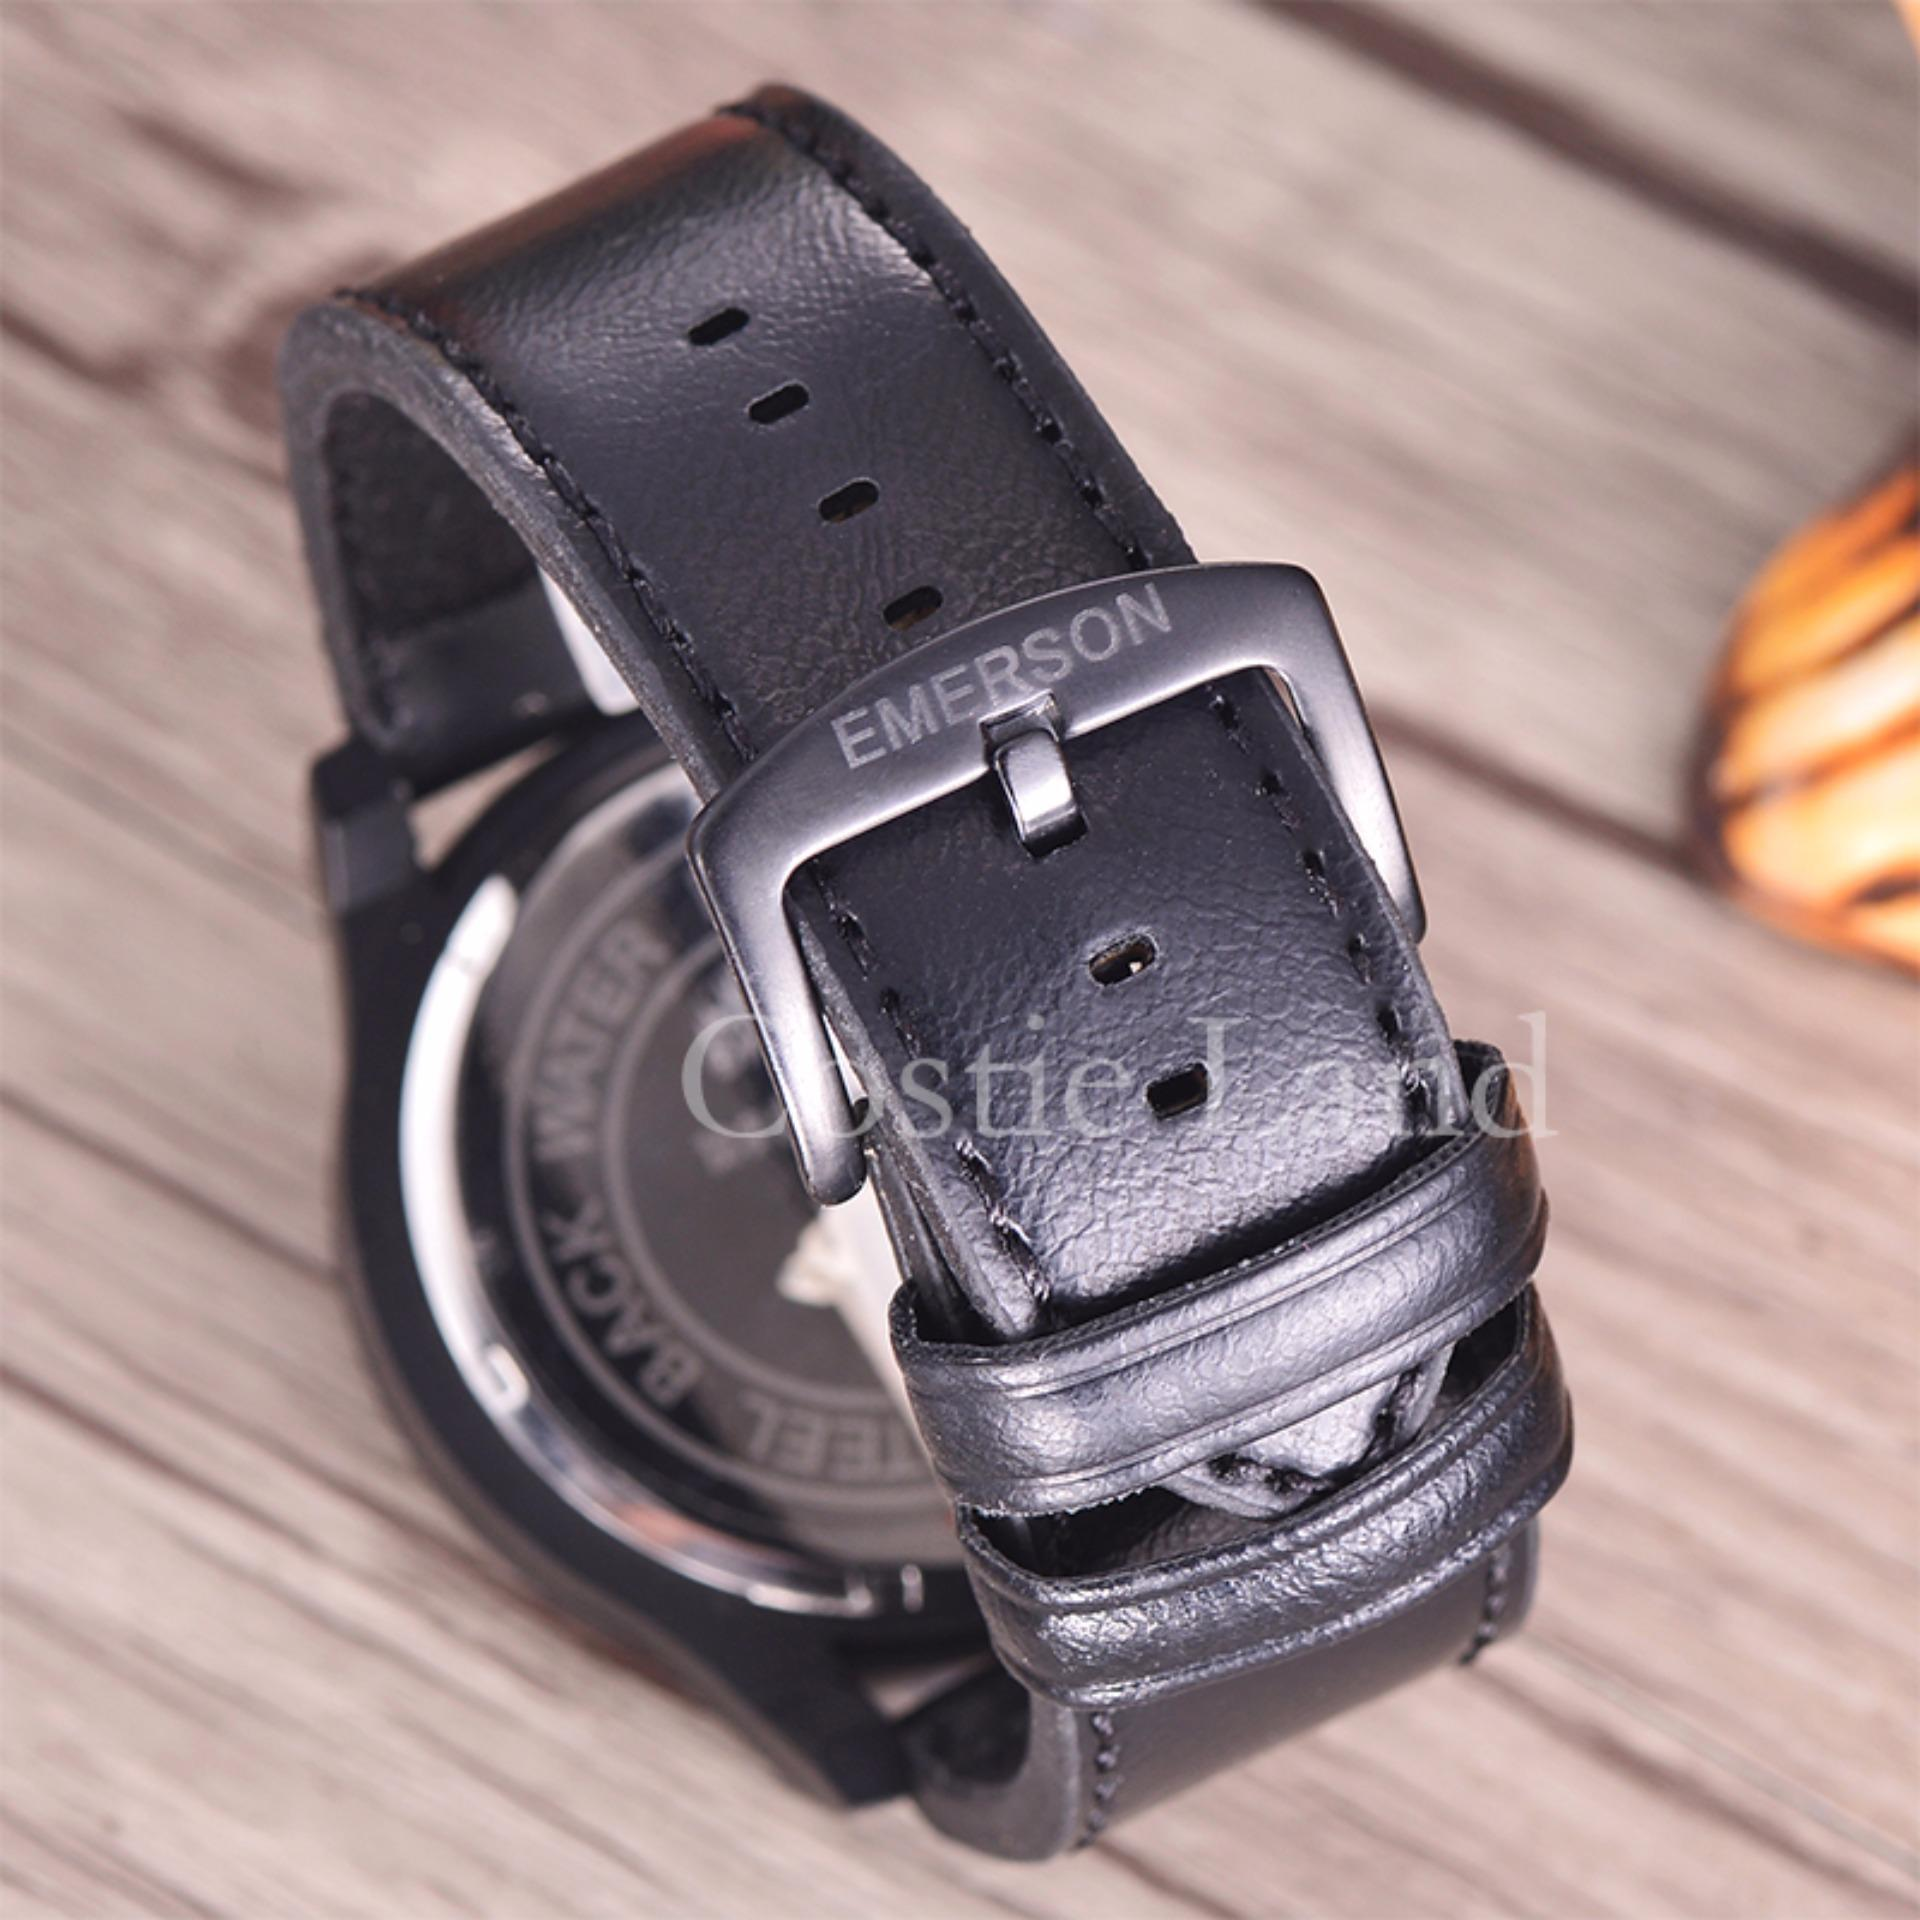 Aksesoris Fashion Swiss Army Daftar Harga Aksesoris Fashion Swiss Source · Emerson Jam Tangan Pria Body Black Black Orange Dial EM